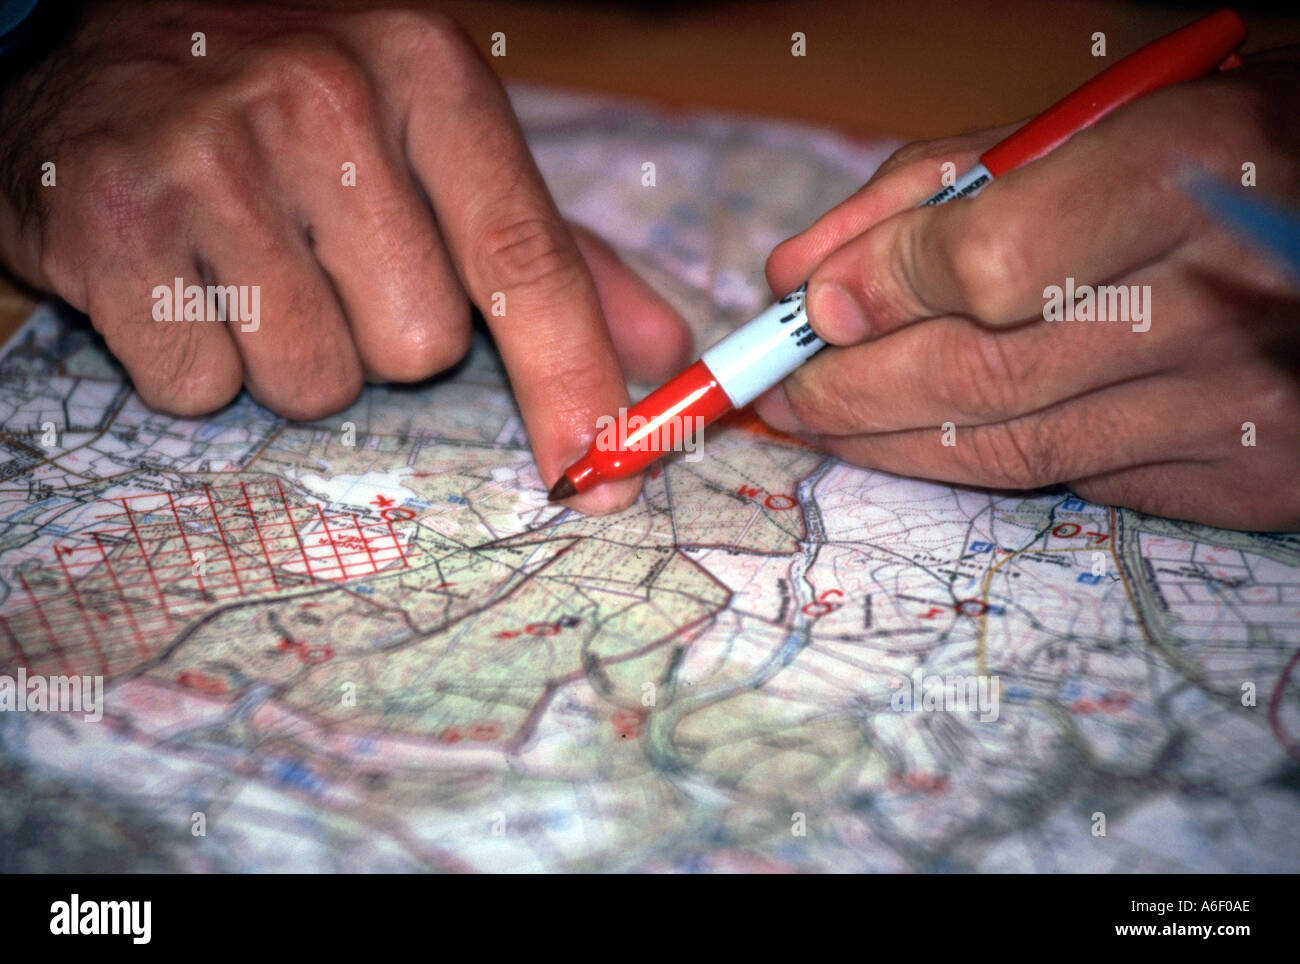 Fingers marking route on map - Stock Image